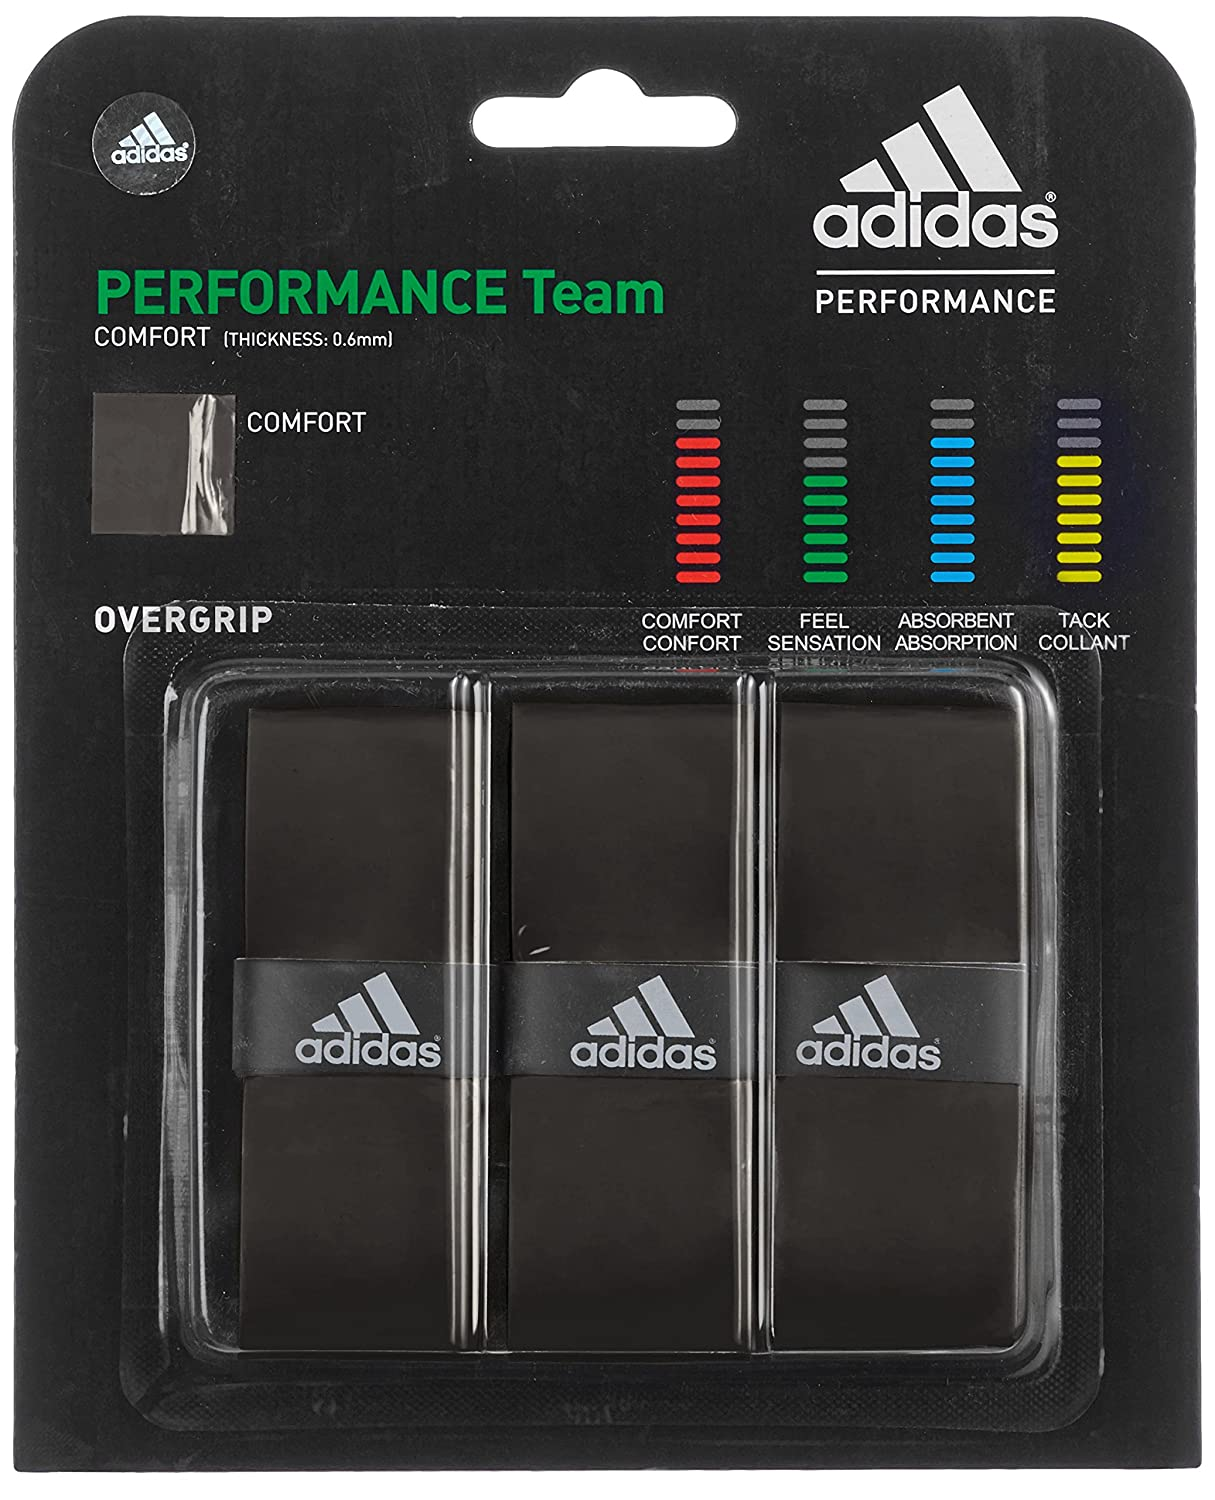 adidas Badmintongrip Performance Team - Raqueta de bádminton, color negro, talla Talla única GR210301